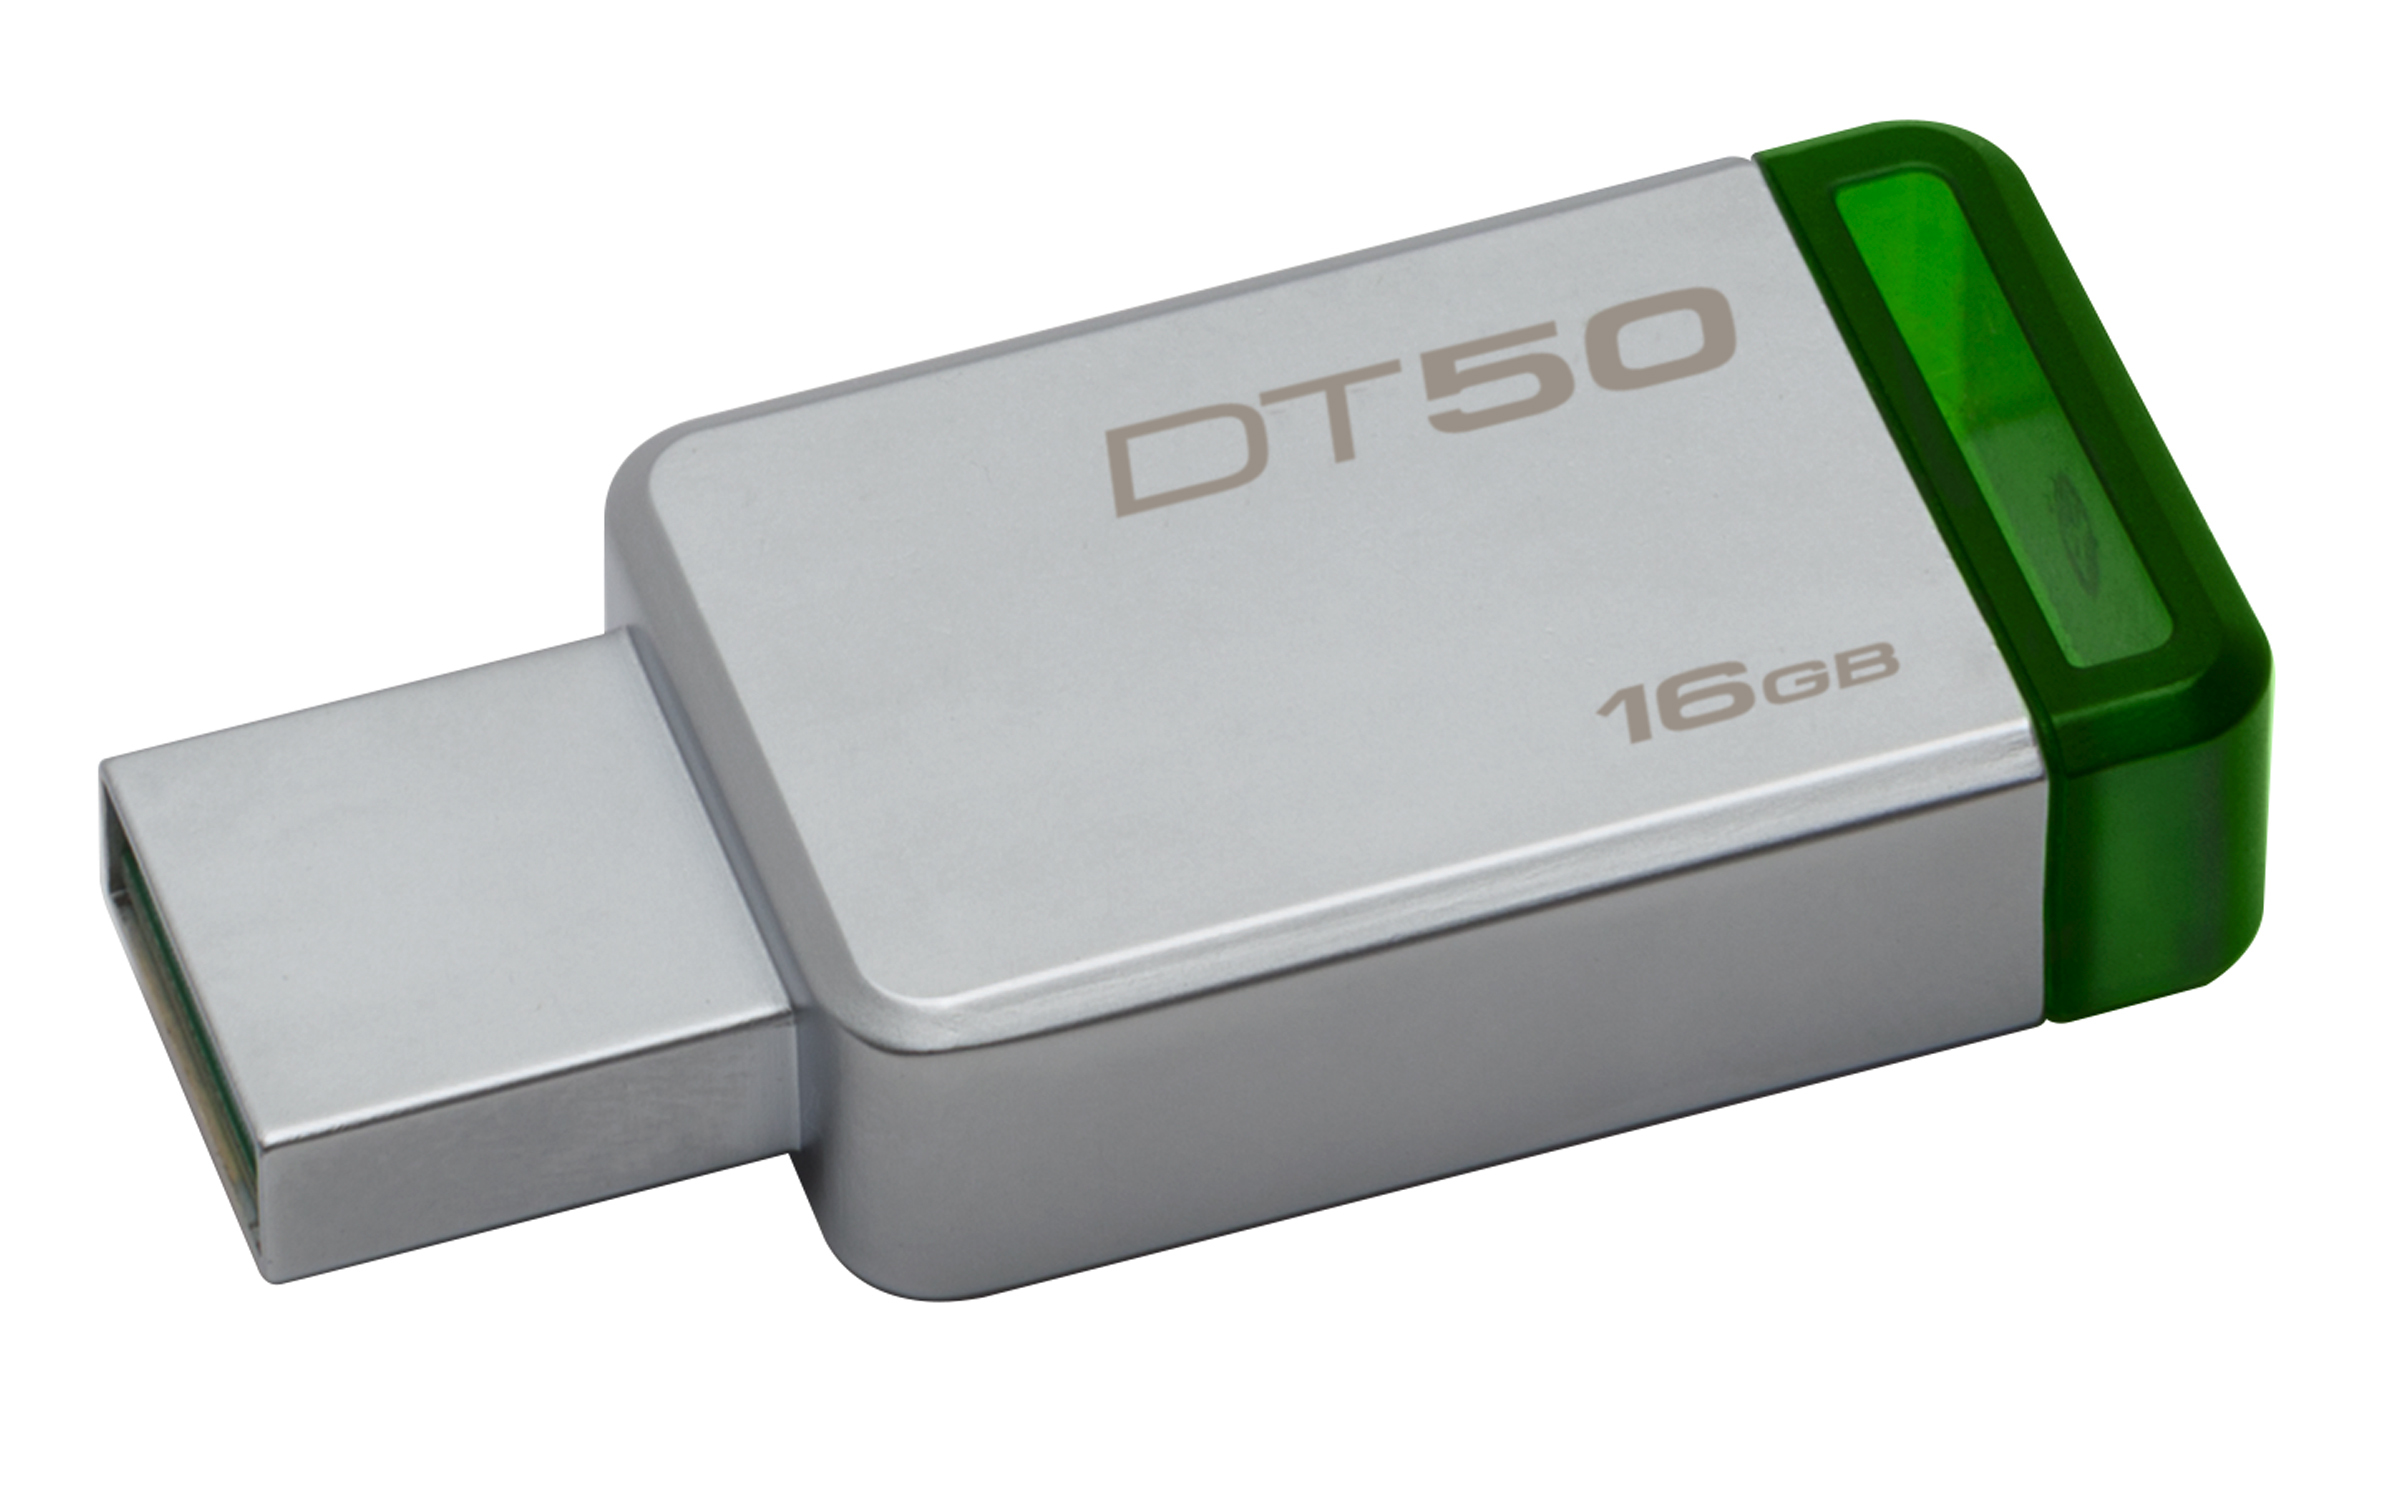 Kingston Technology DataTraveler 50 16GB USB flash drive 3.0 (3.1 Gen 1) USB-Type-A-aansluiting Groen, Zilver